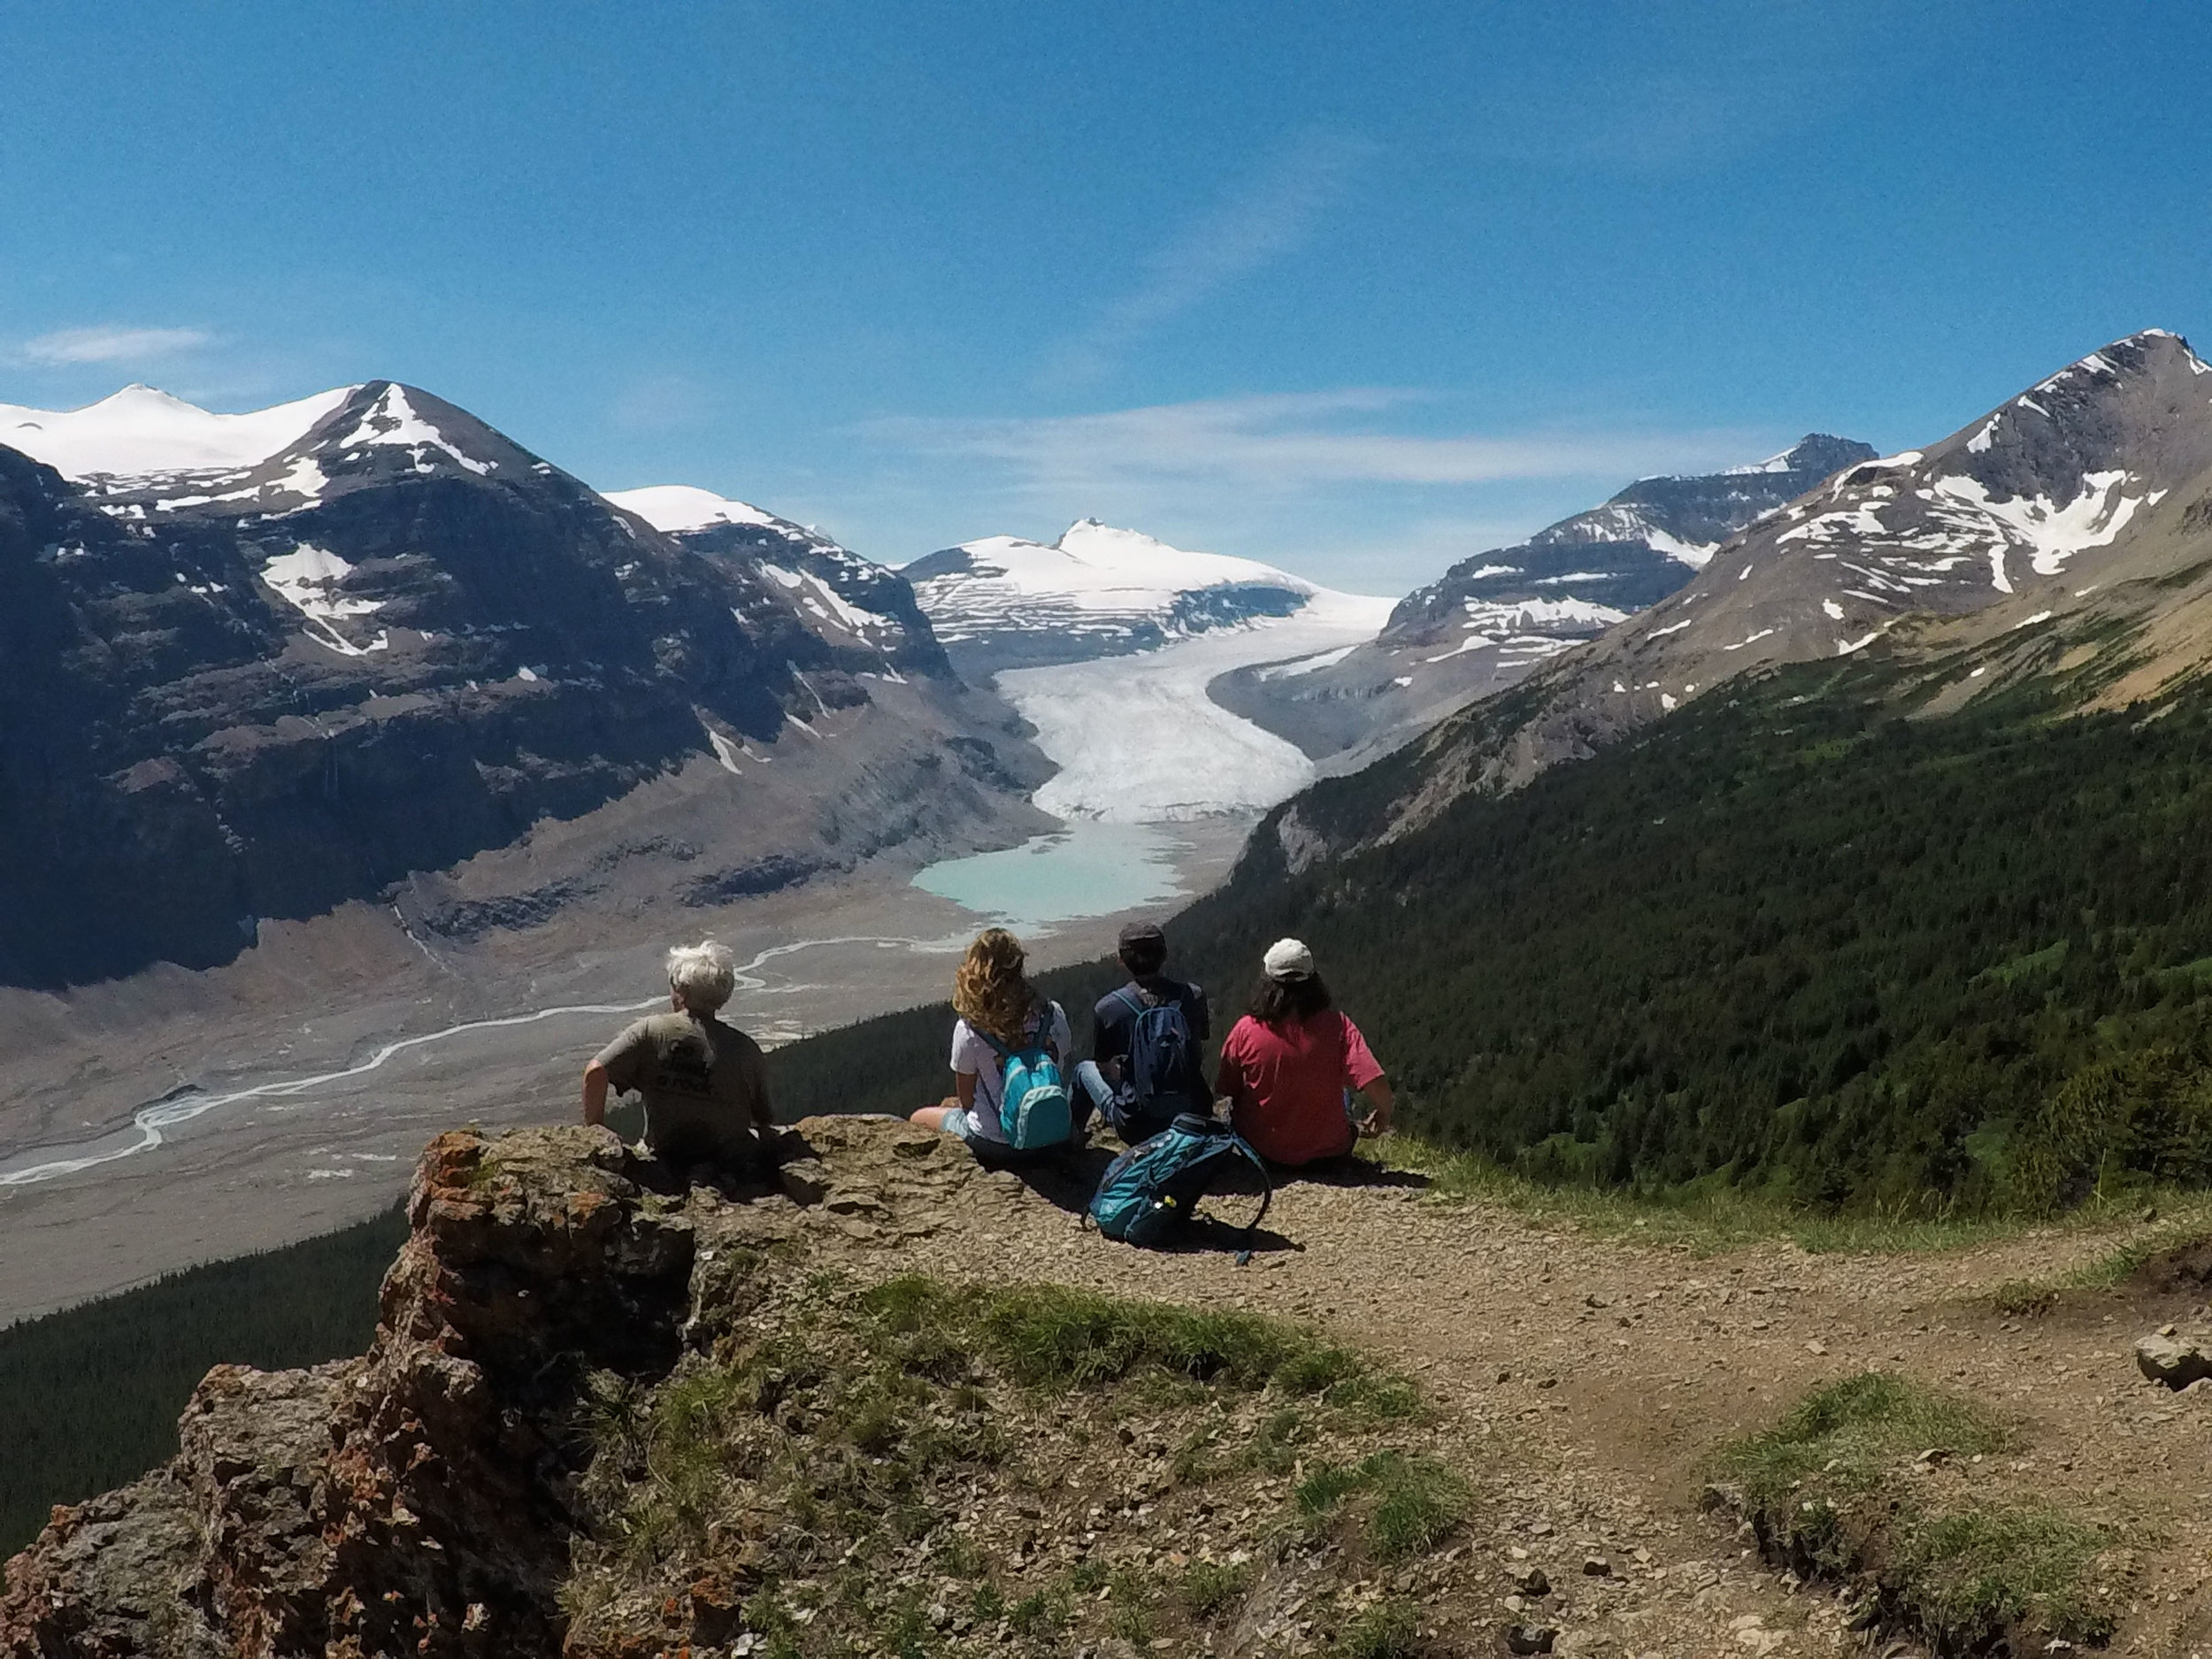 Picnic on guided adventure tour in the Rockies.